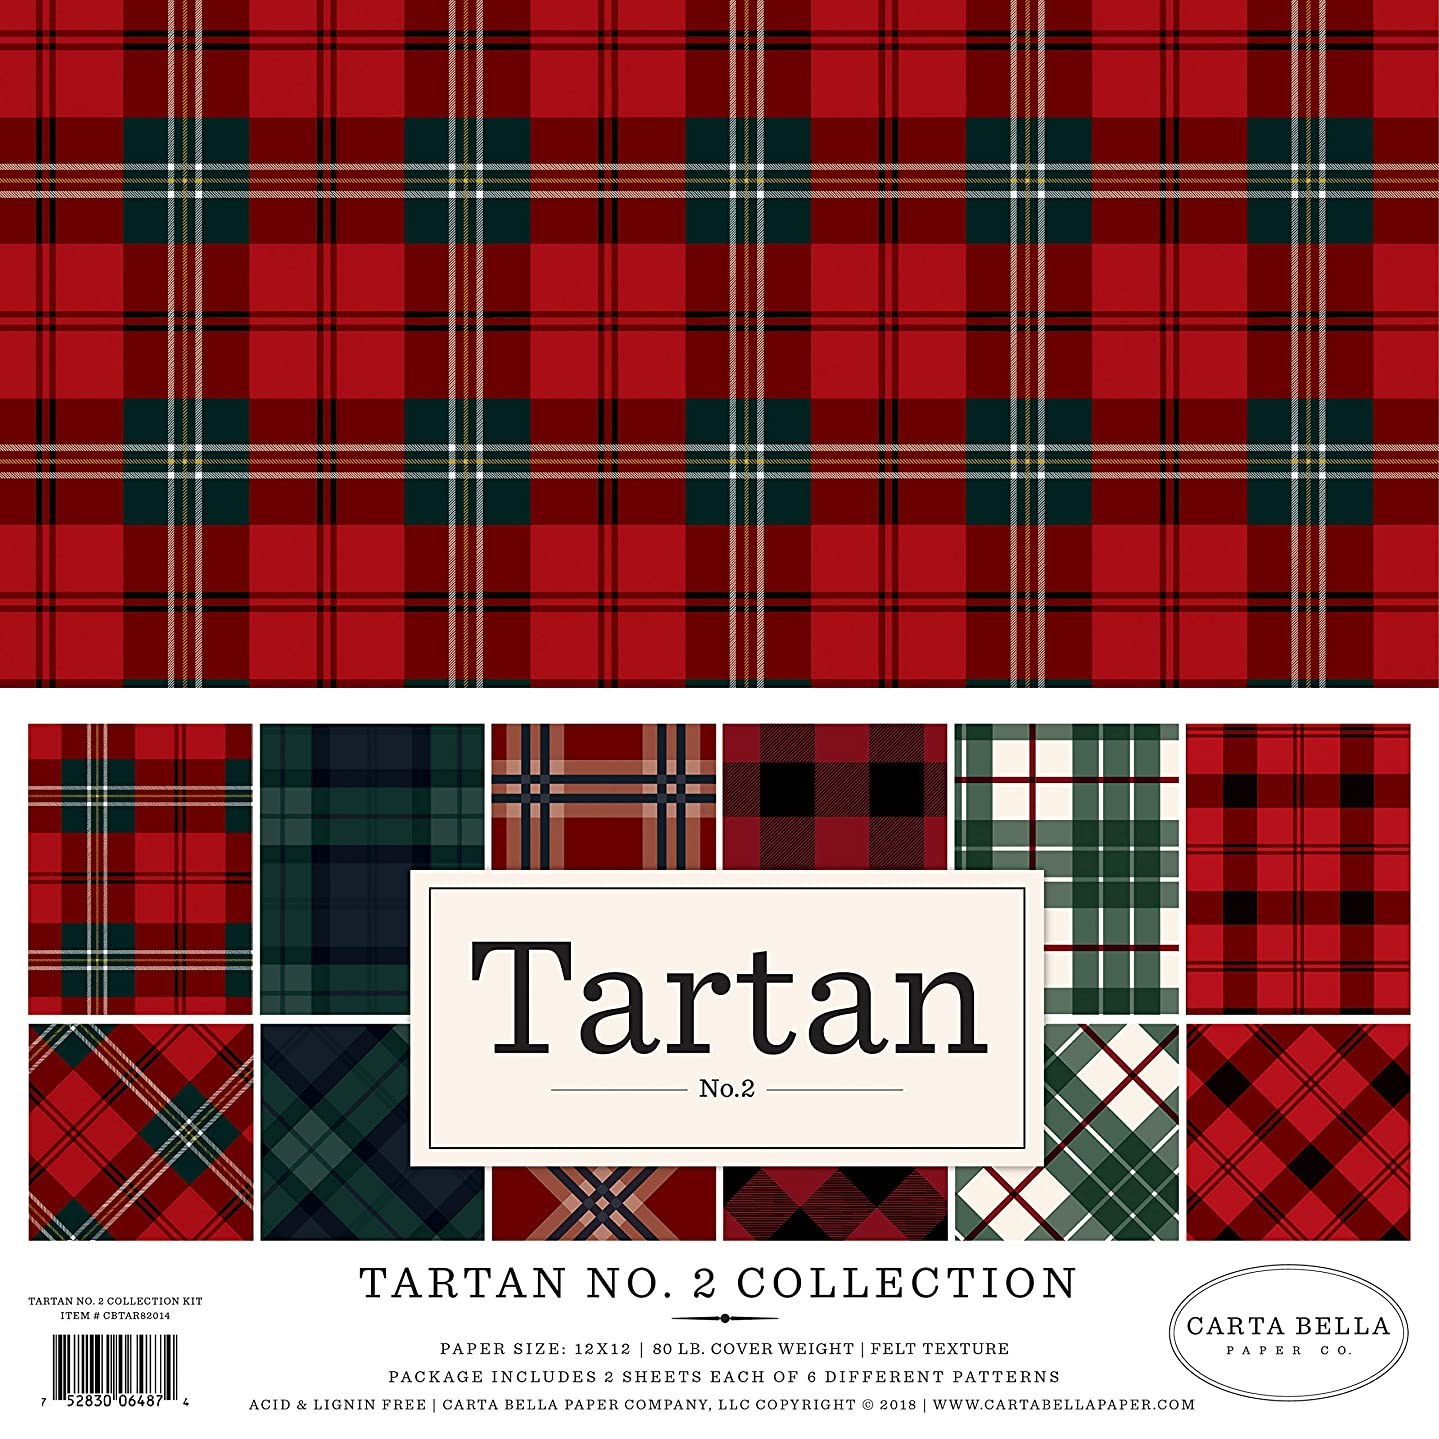 Carta Bella Paper CBTAR82014 Tartan no.2 Collection Kit Paper, Red/Green Navy/Black